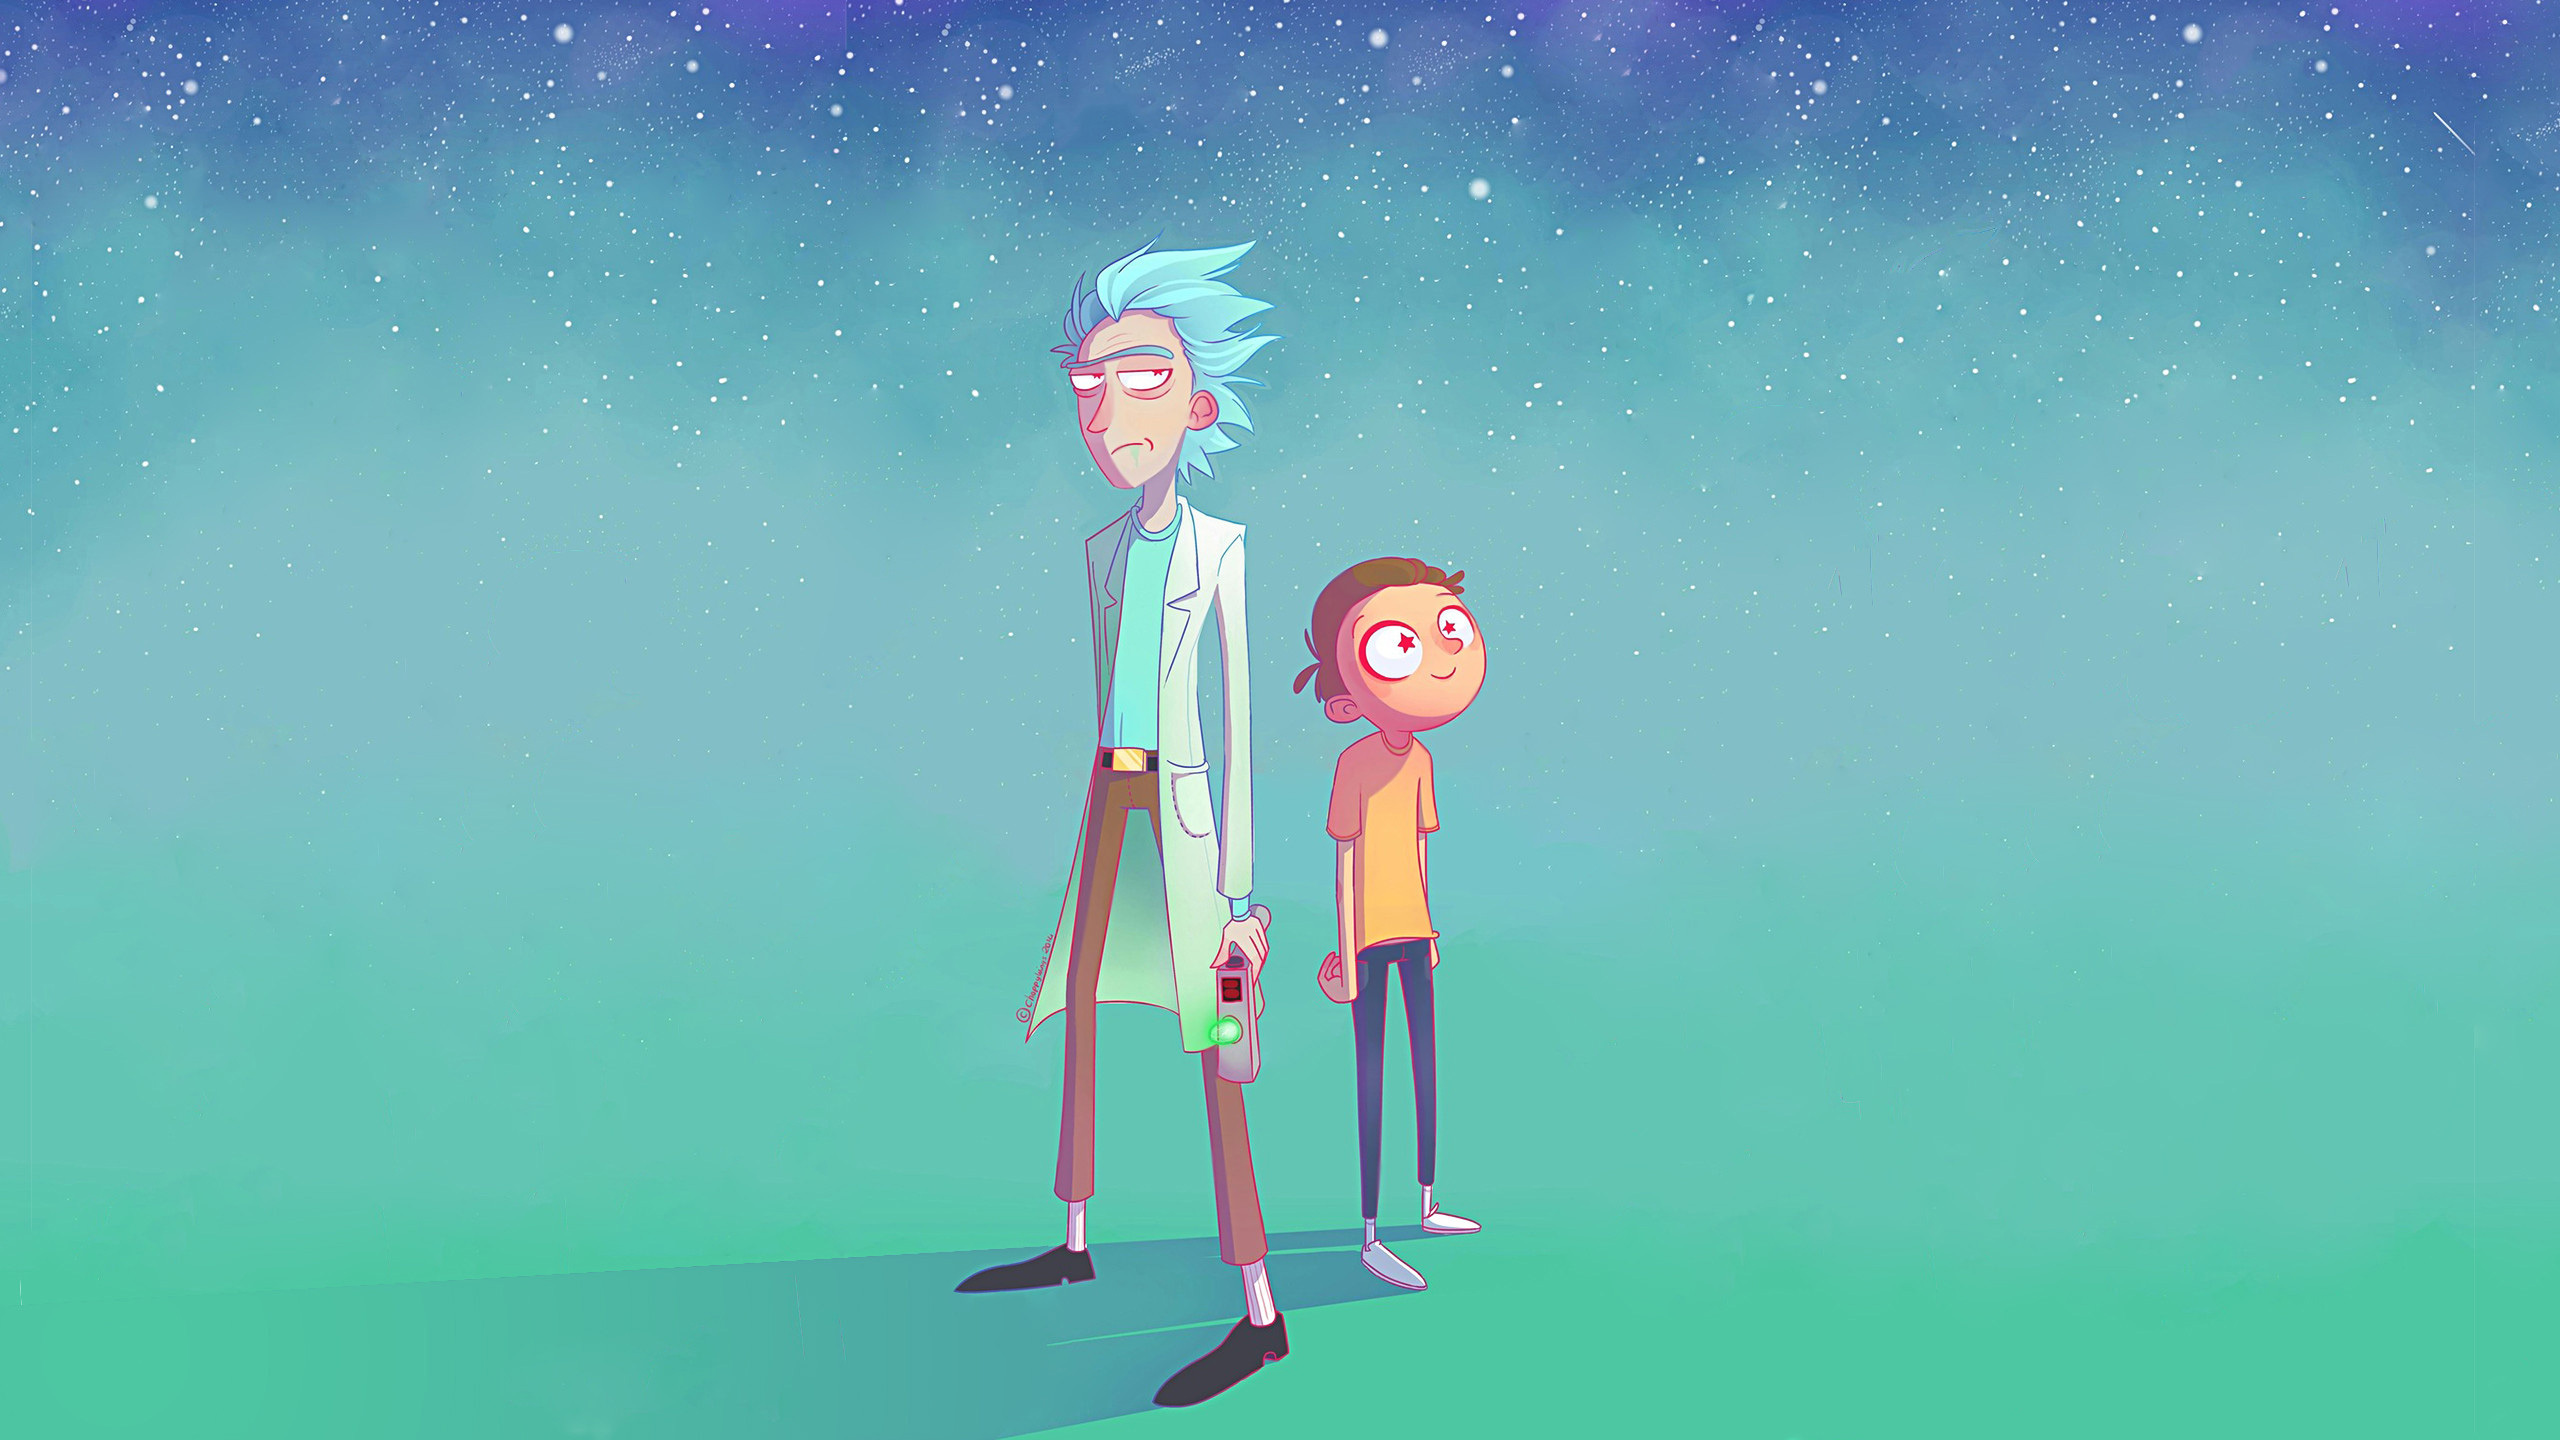 2560x1440 Rick And Morty Artwork 1440p Resolution Hd 4k